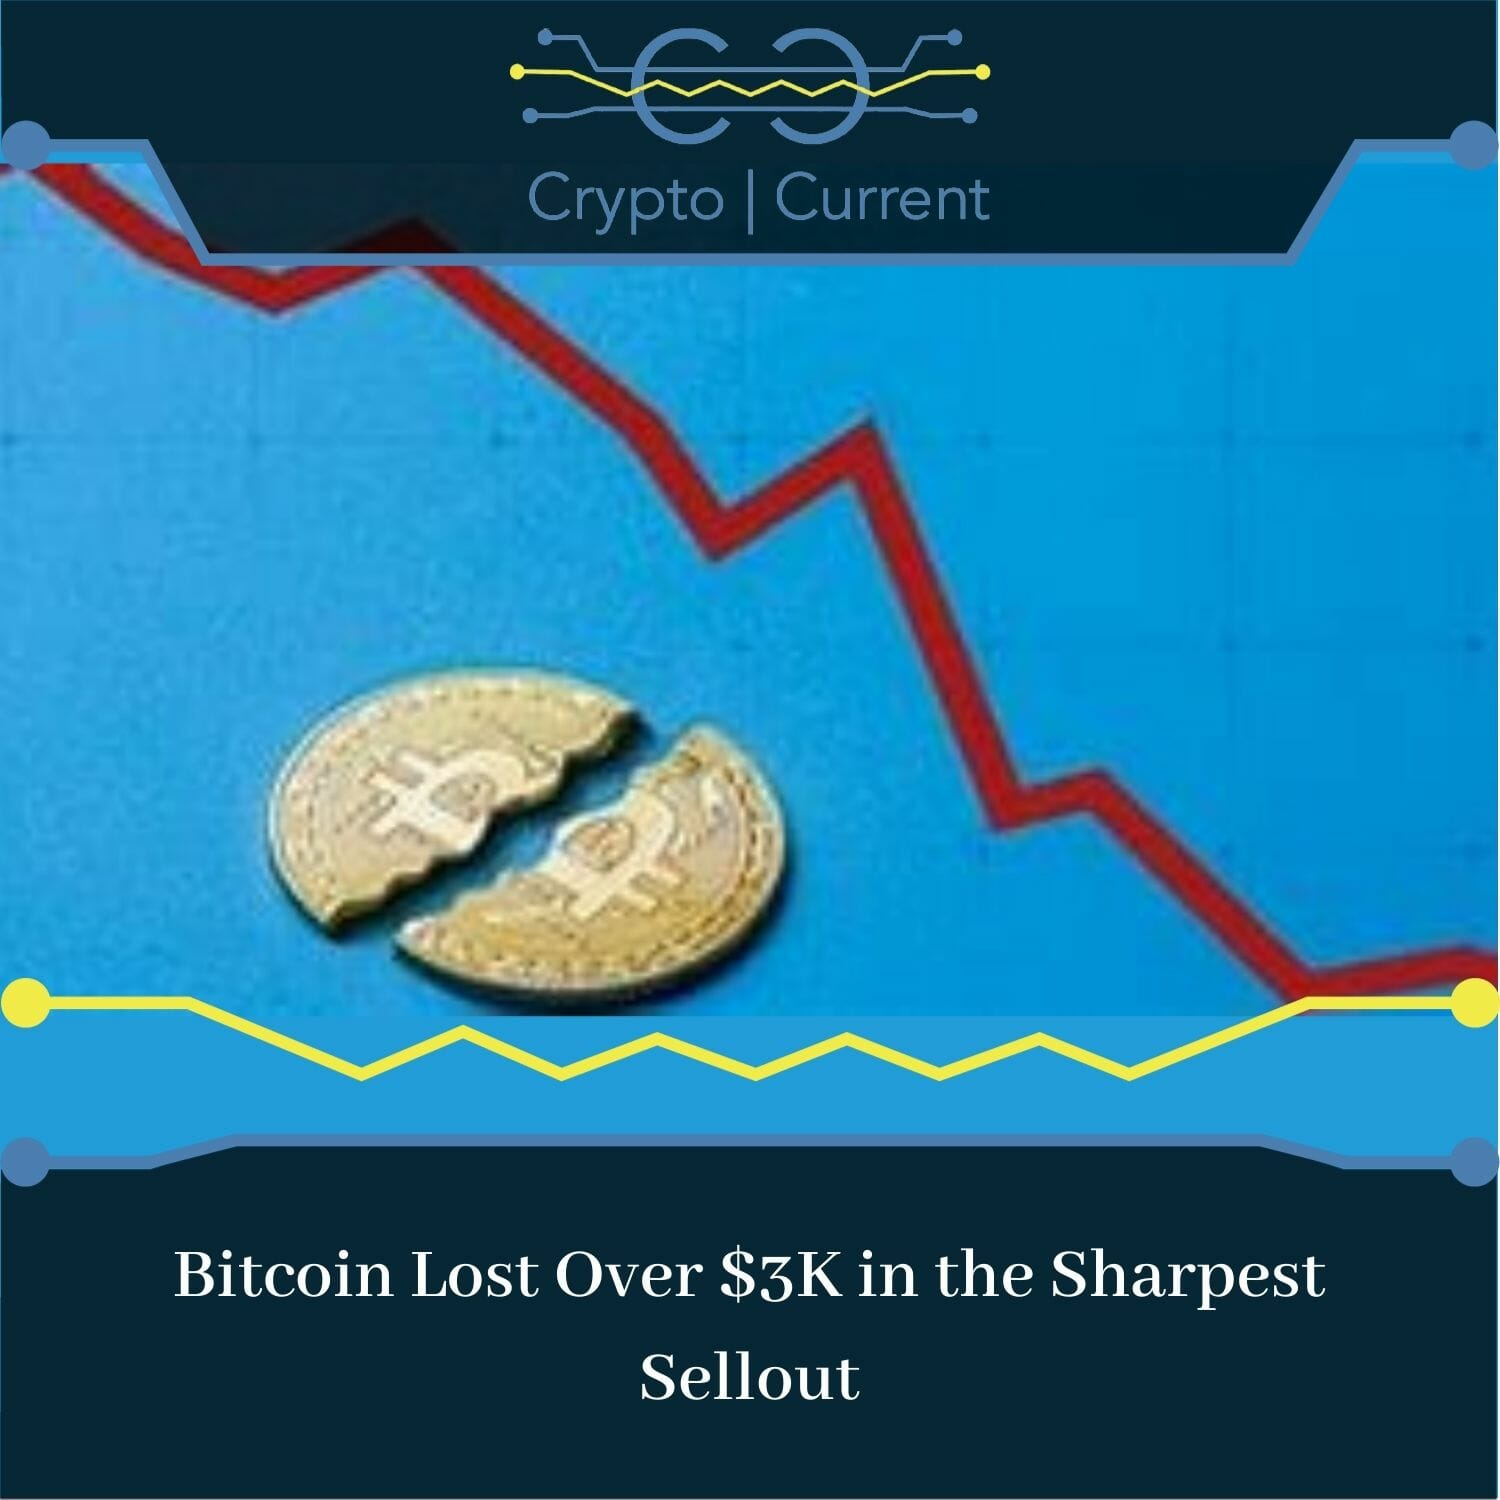 Bitcoin Lost Over $3K in the Sharpest Sellout